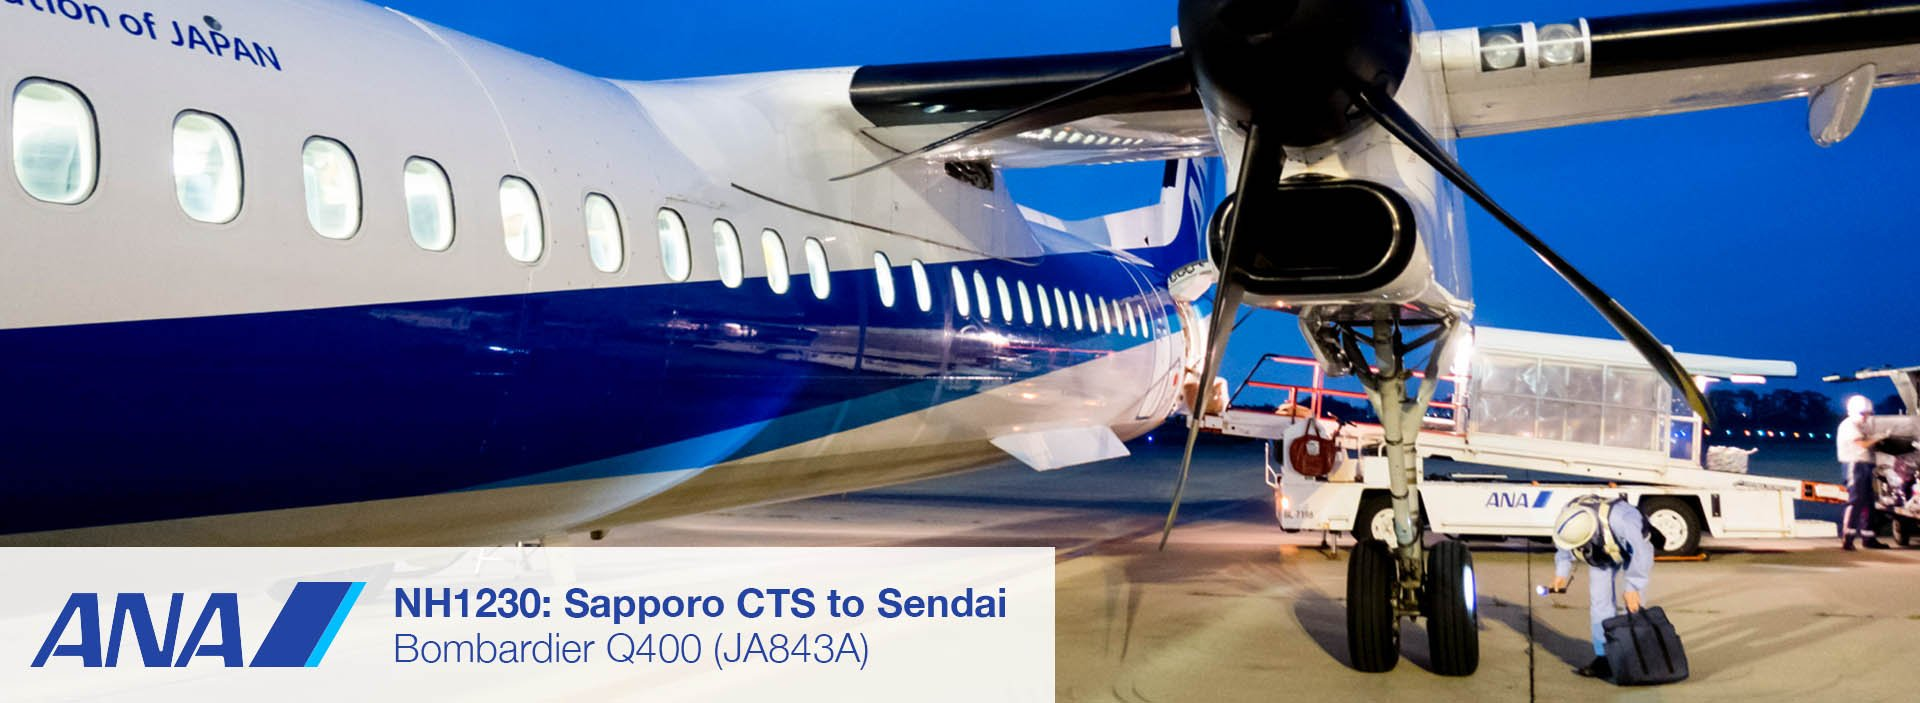 ANA Wings Dash 8 Q400 Economy Class Sapporo CTS to Sendai Flight Review